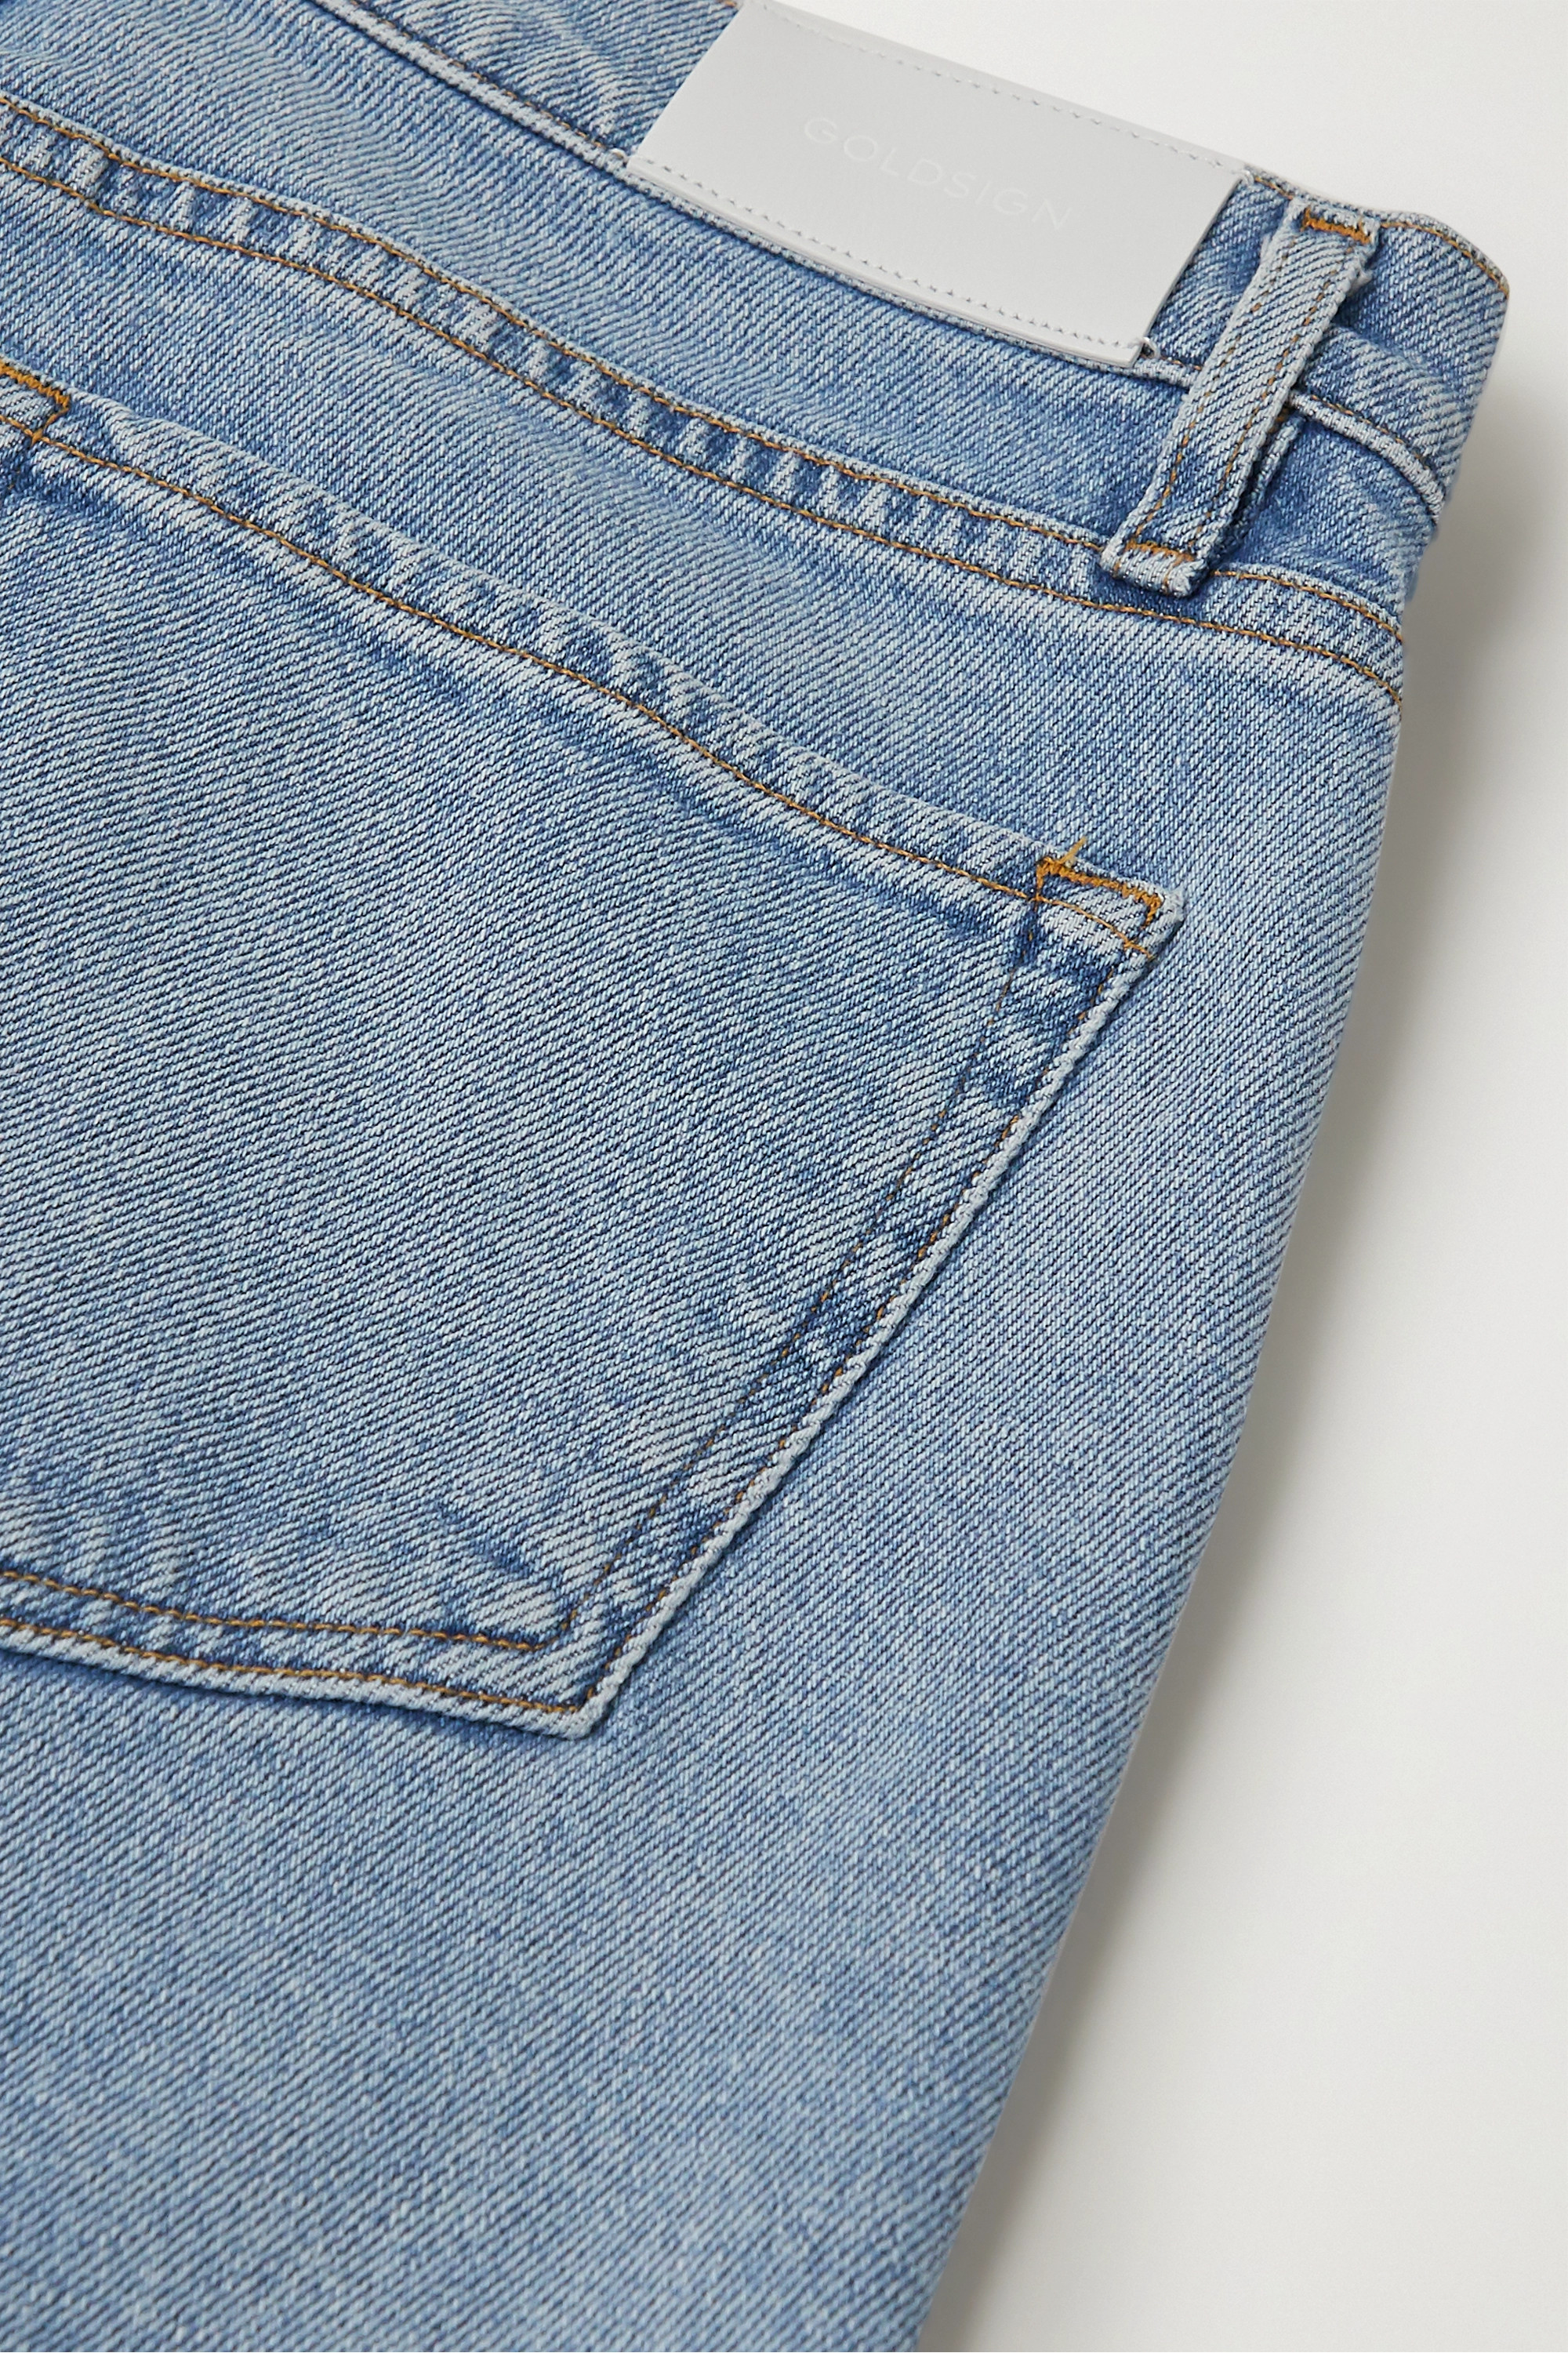 GOLDSIGN + NET SUSTAIN high-rise bootcut jeans